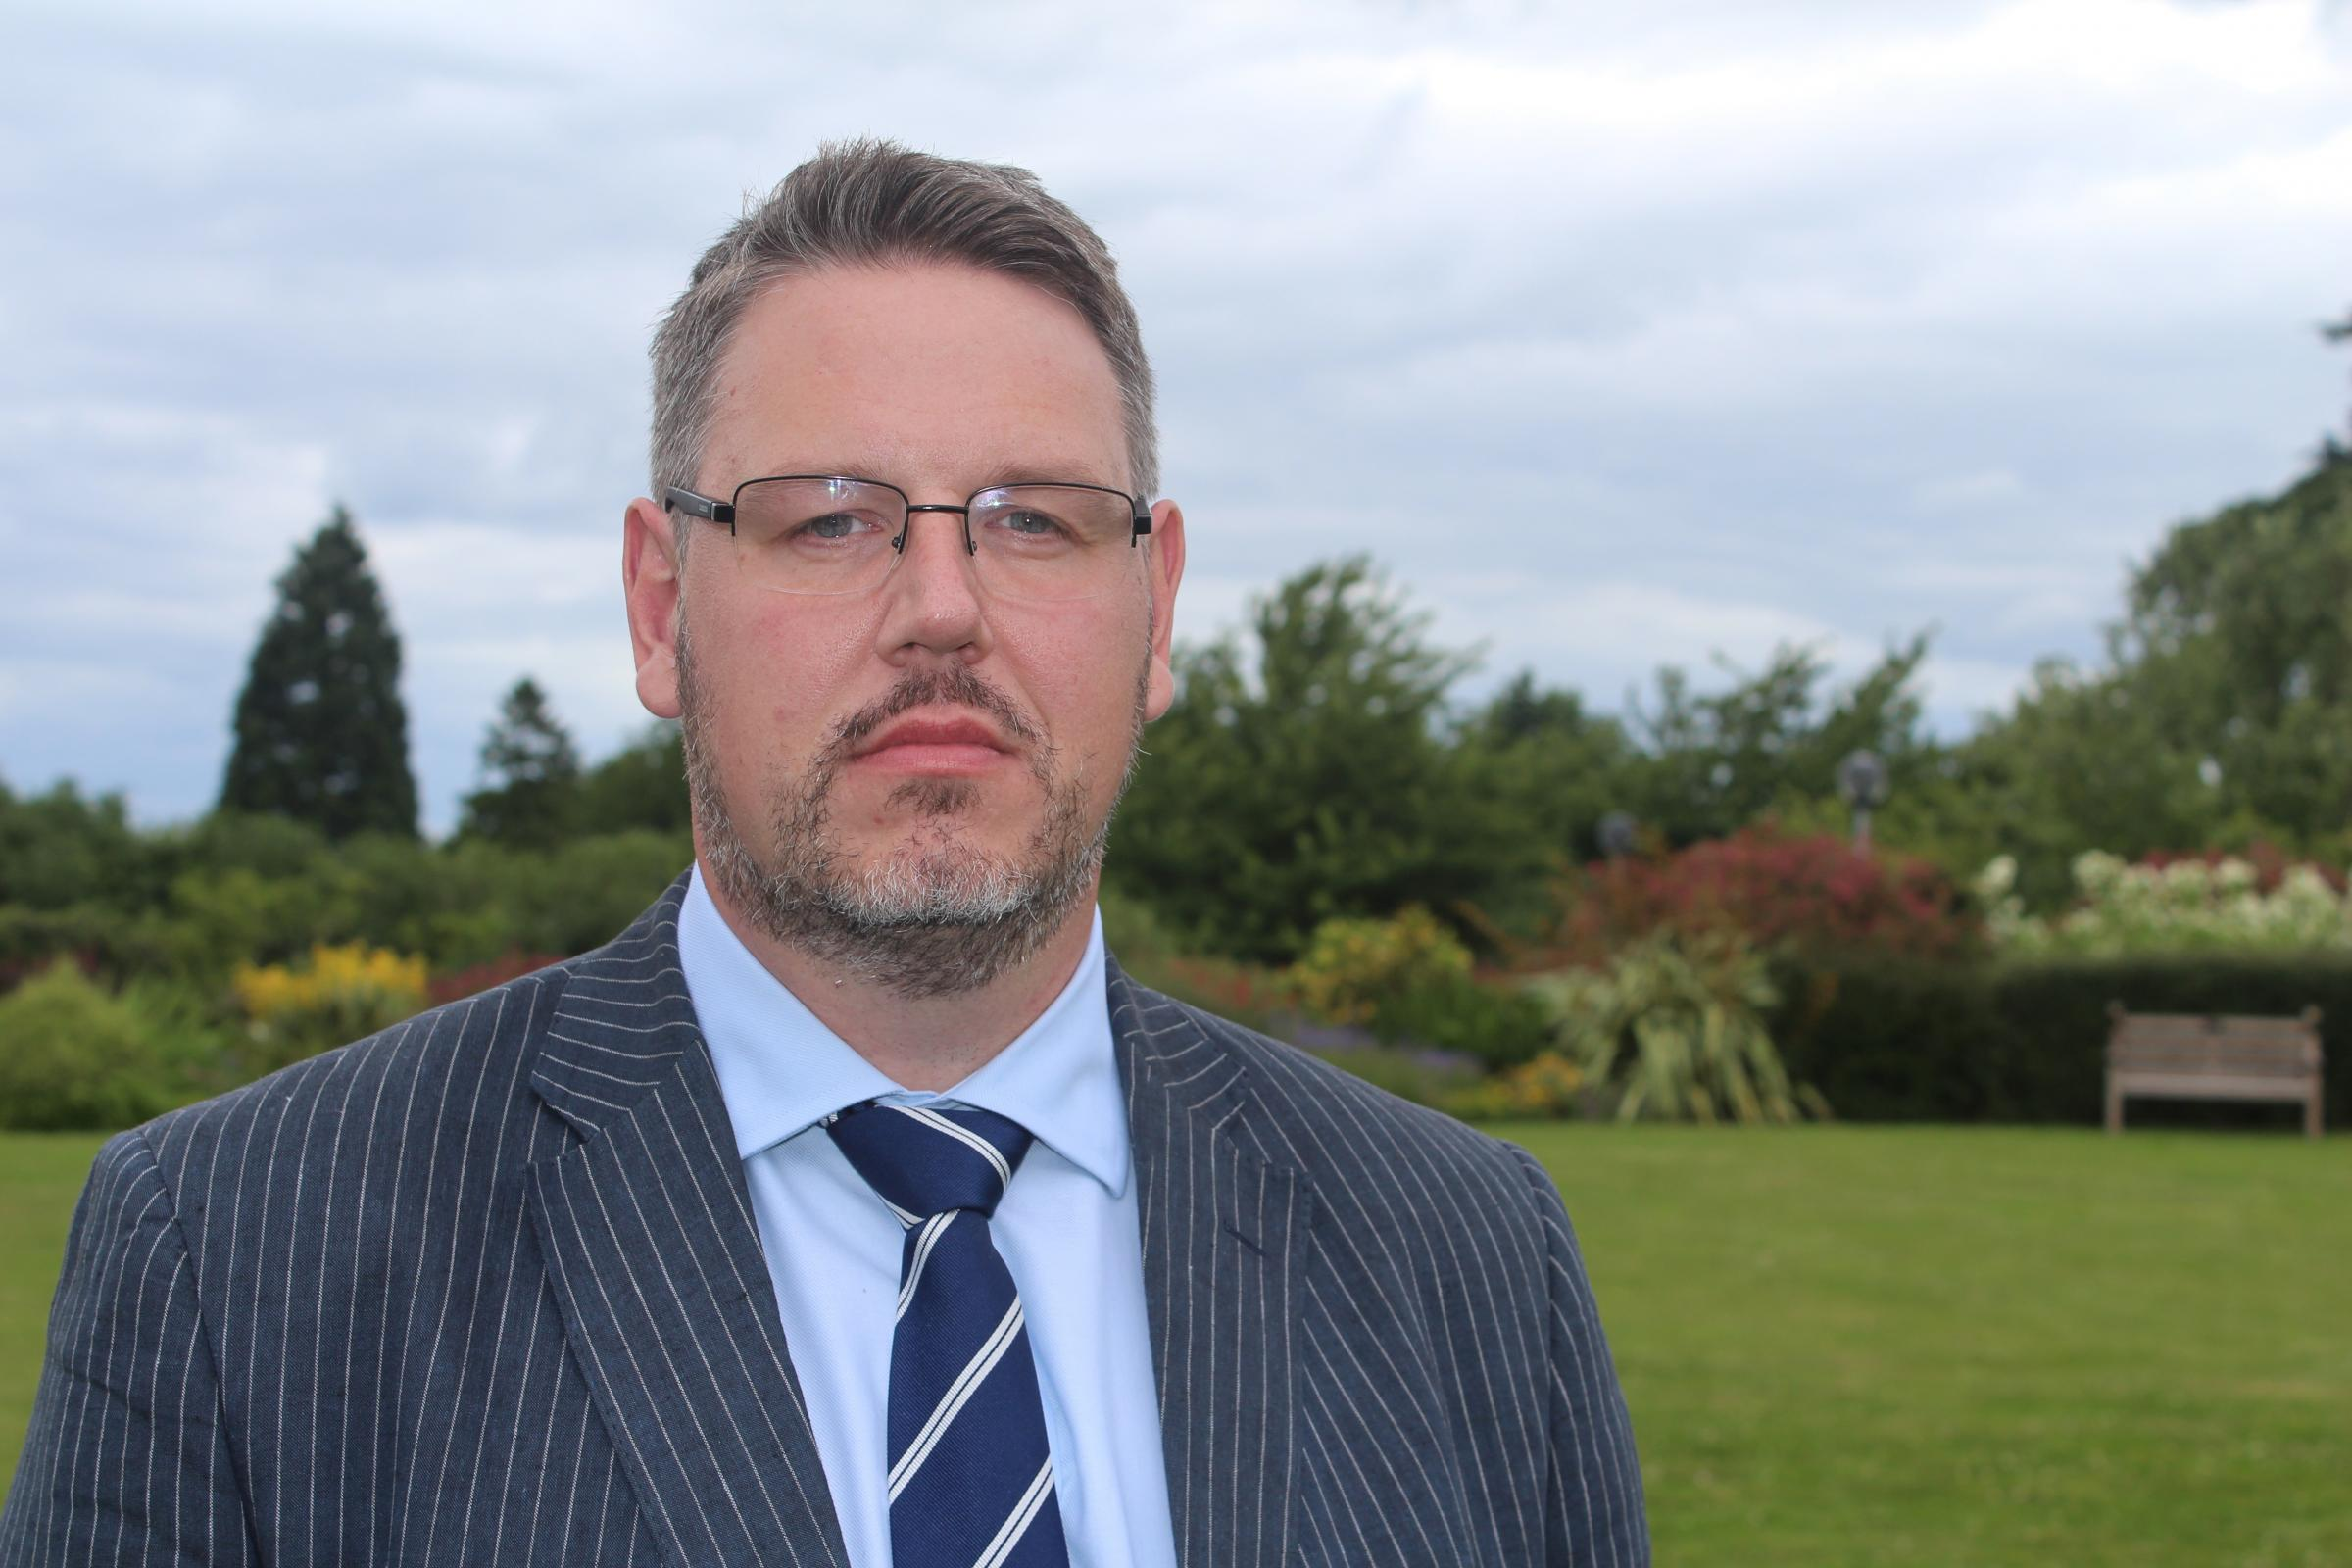 West Mercia Police and Crime Commissioner John Campion has announced plans to split from Warwickshire Police